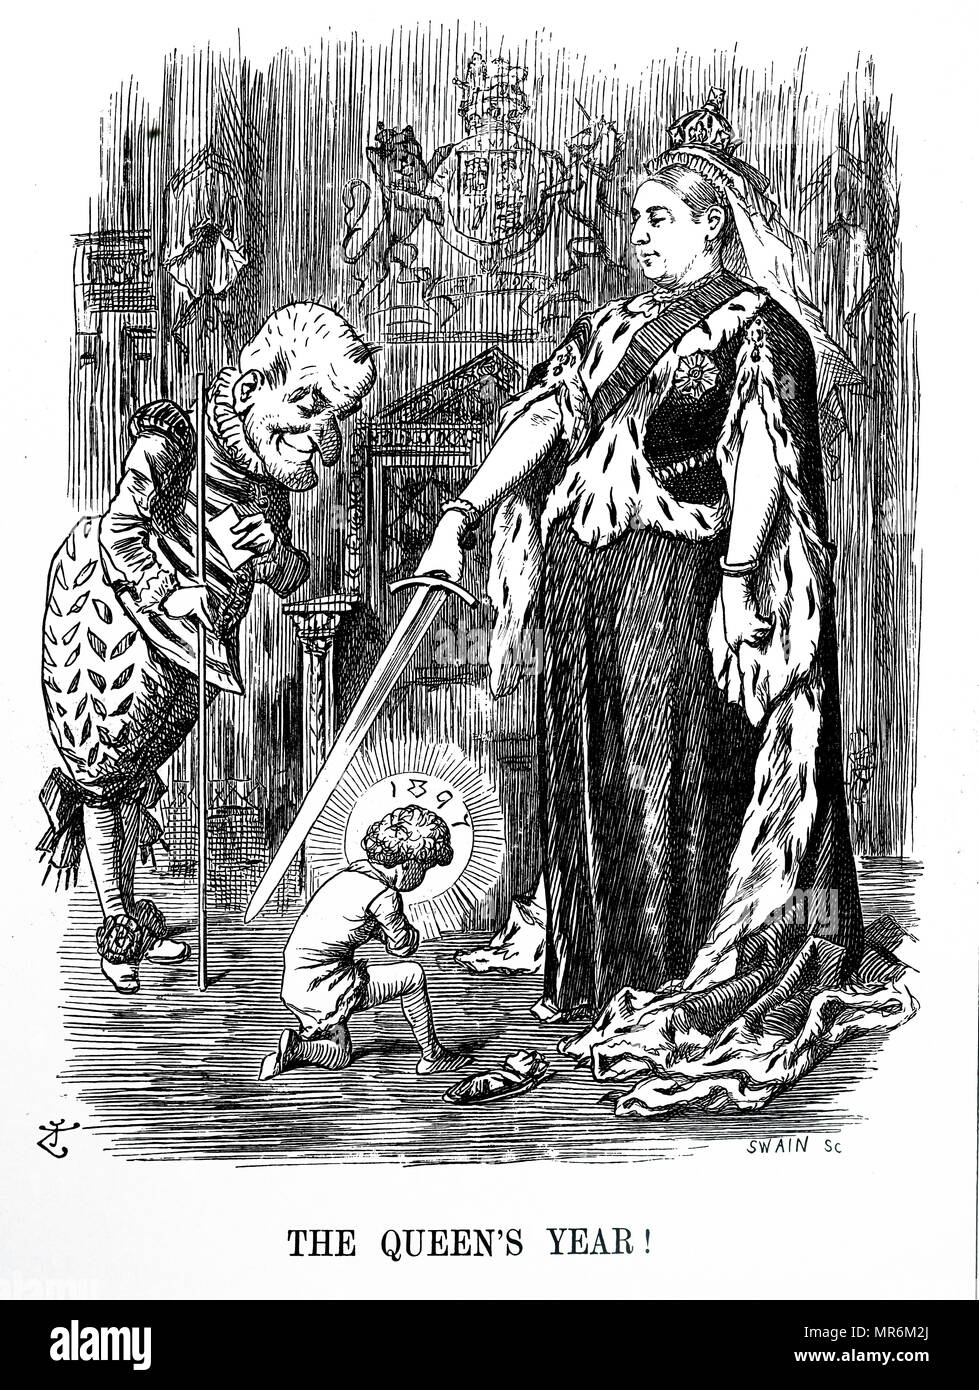 Cartoon commenting on Queen Victoria's Diamond Jubilee, 1897. Mr Punch presents the New Year to the Queen, and dedicating it to her. Illustrated by John Tenniel (1820-1914) an English illustrator, graphic humourist, and political cartoonist. Dated 19th century - Stock Image